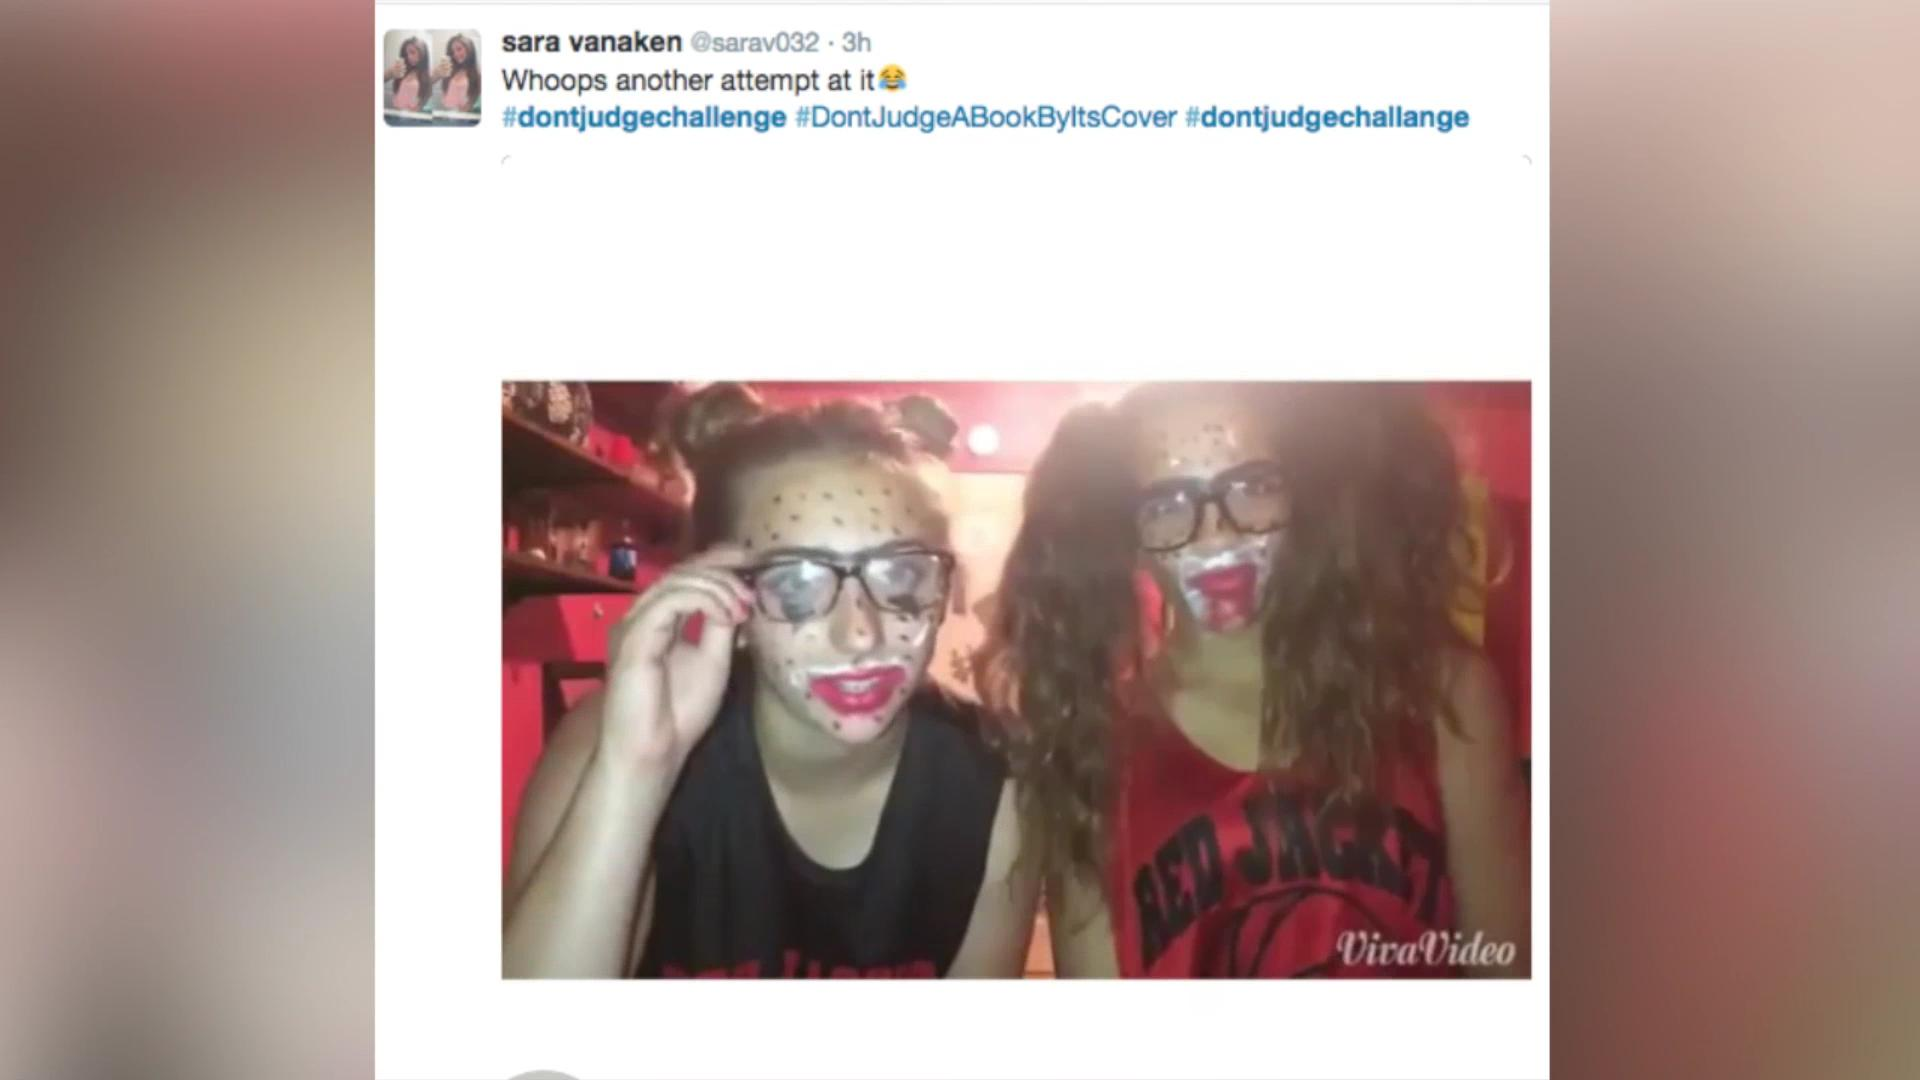 Young People Get Ugly on Instagram for 'Don't Judge Challenge'